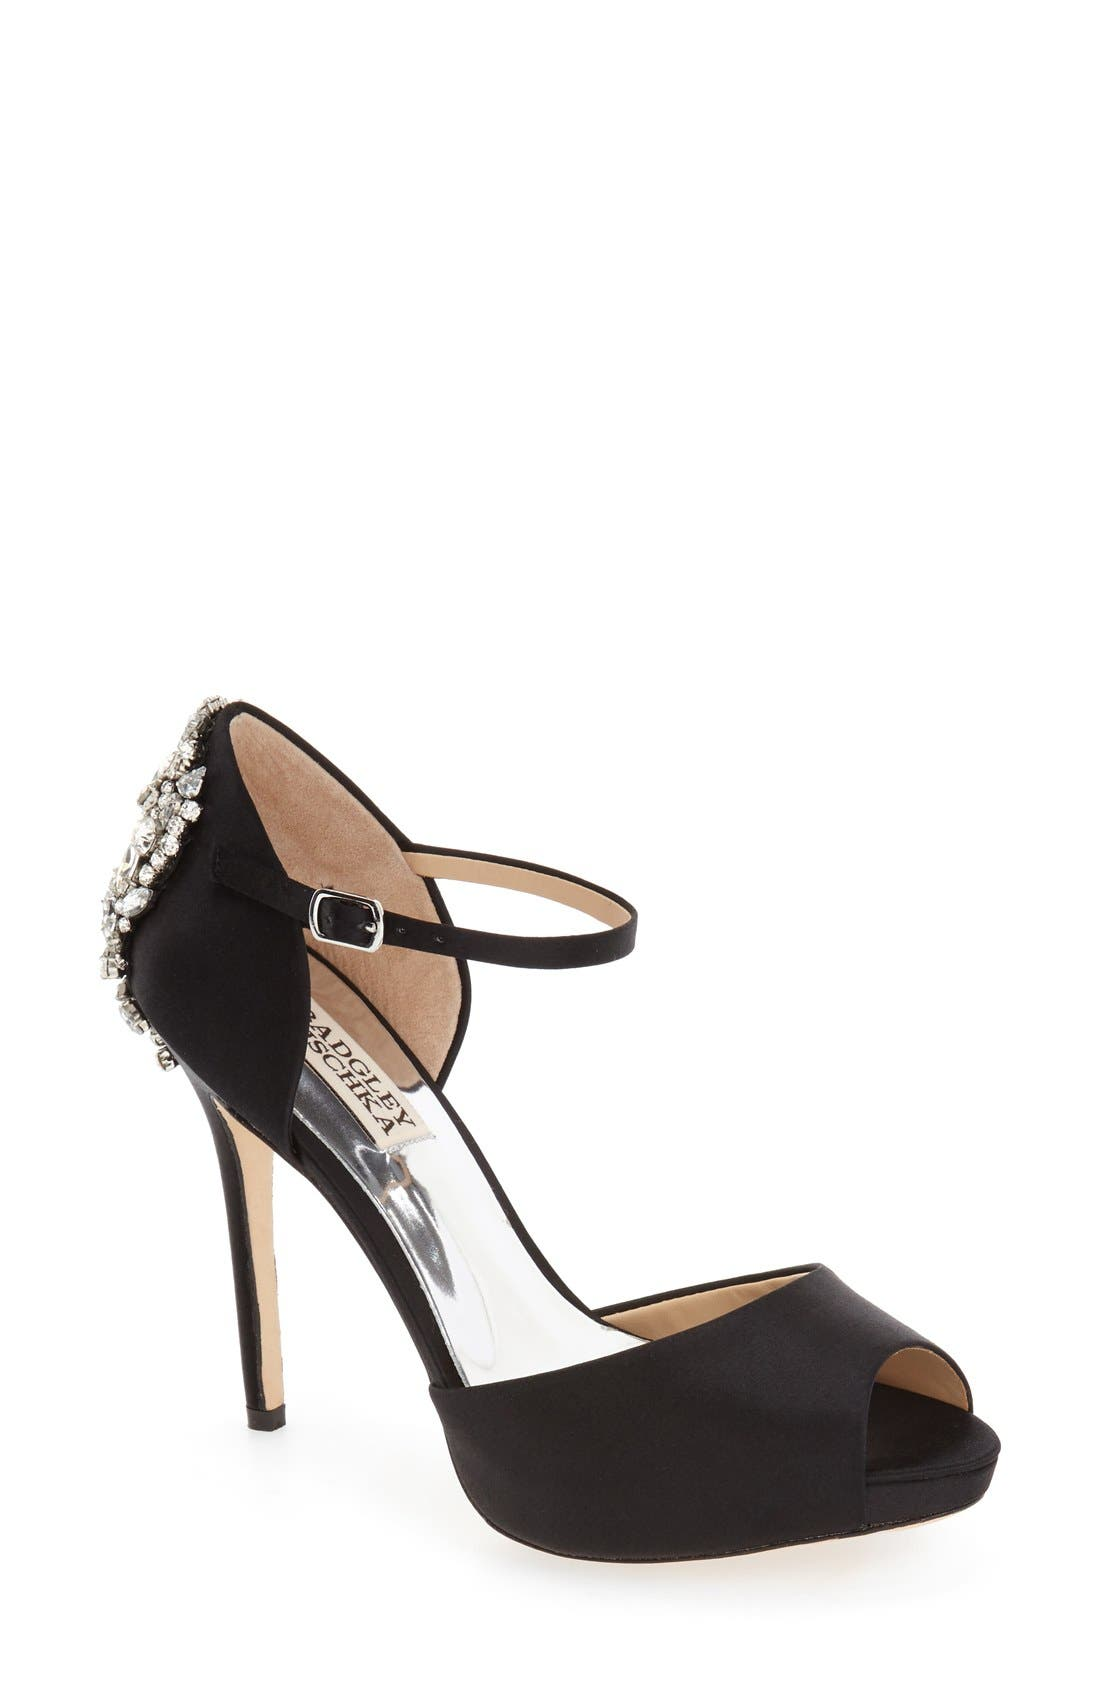 BADGLEY MISCHKA 'Dawn' Crystal Back d'Orsay Pump